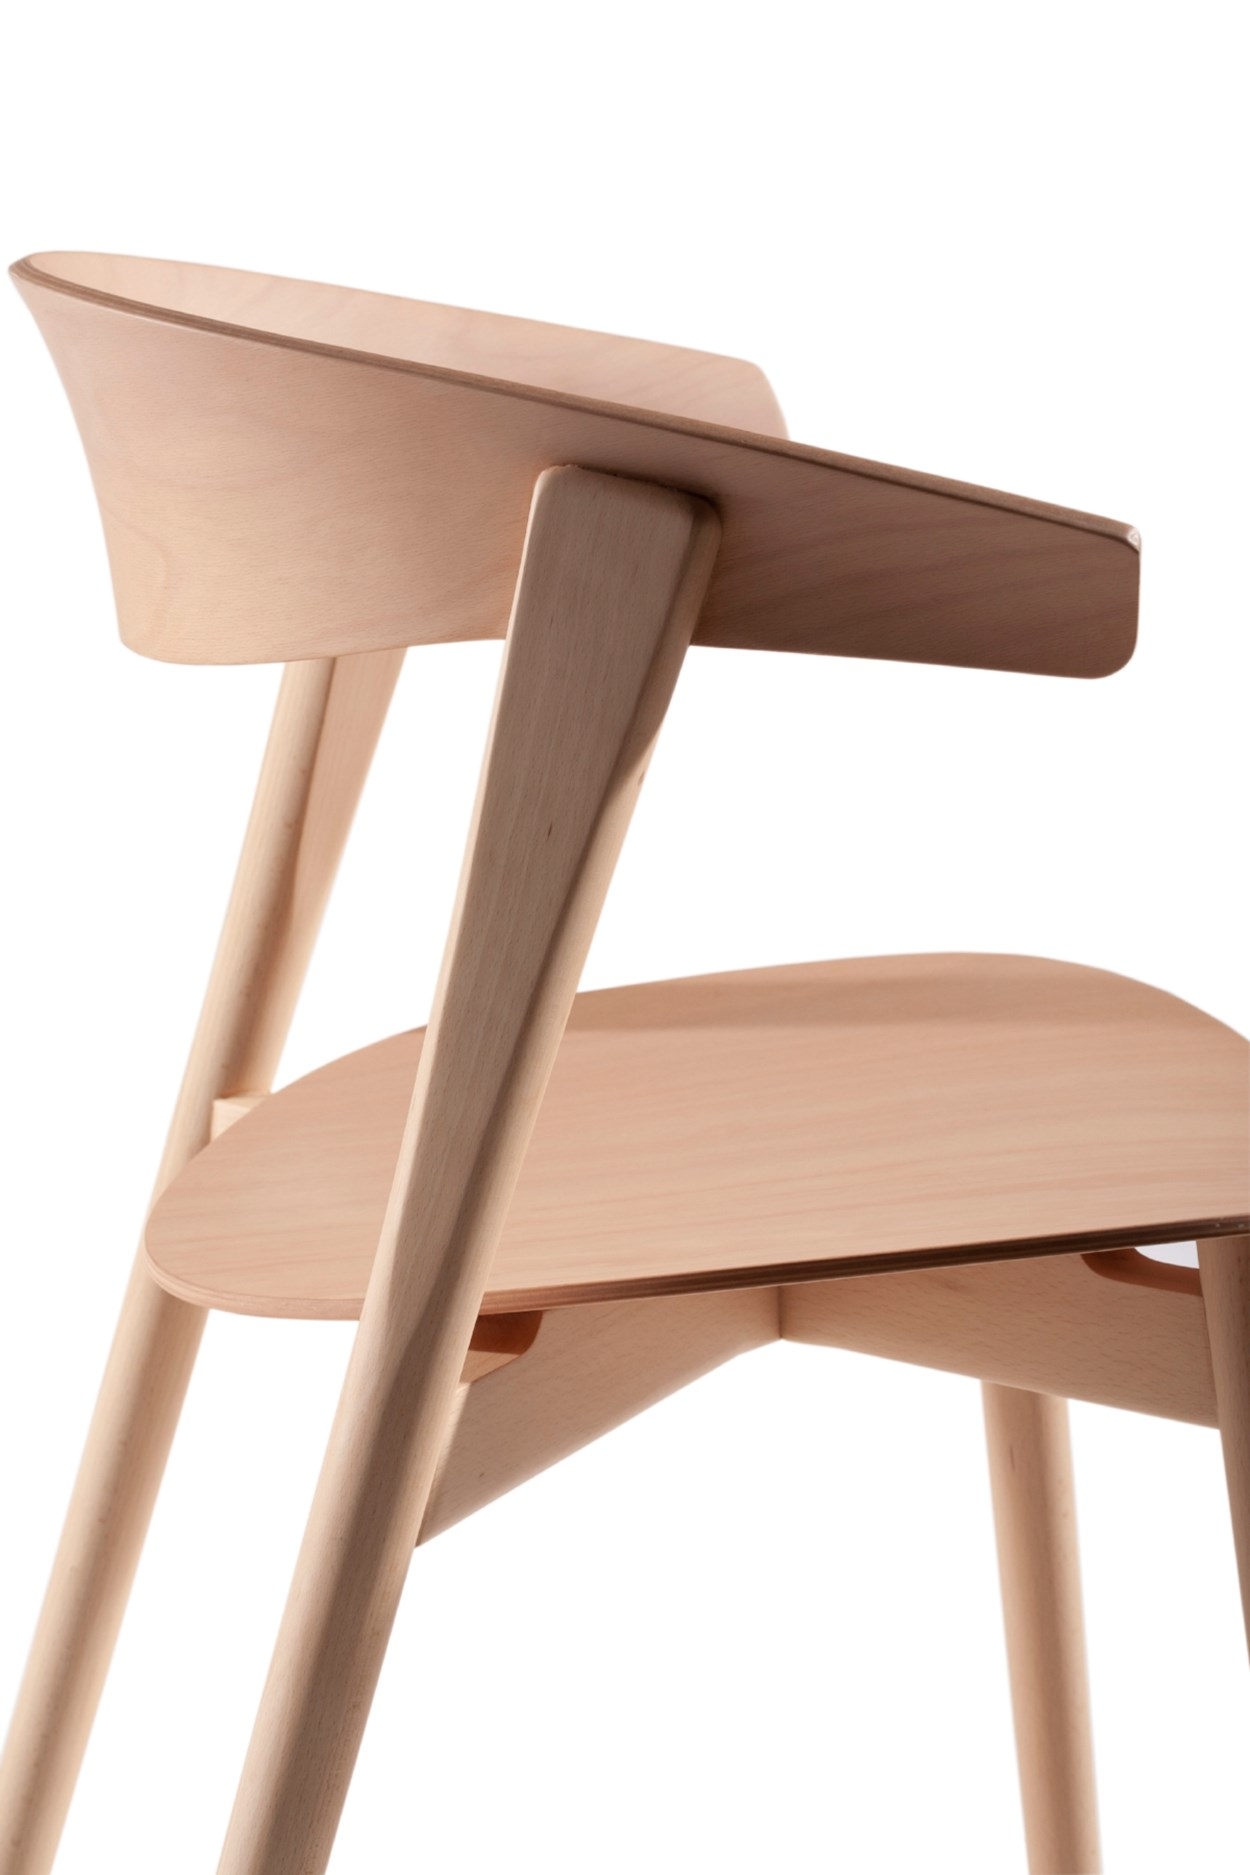 Capdell-NIX -chair3.jpg